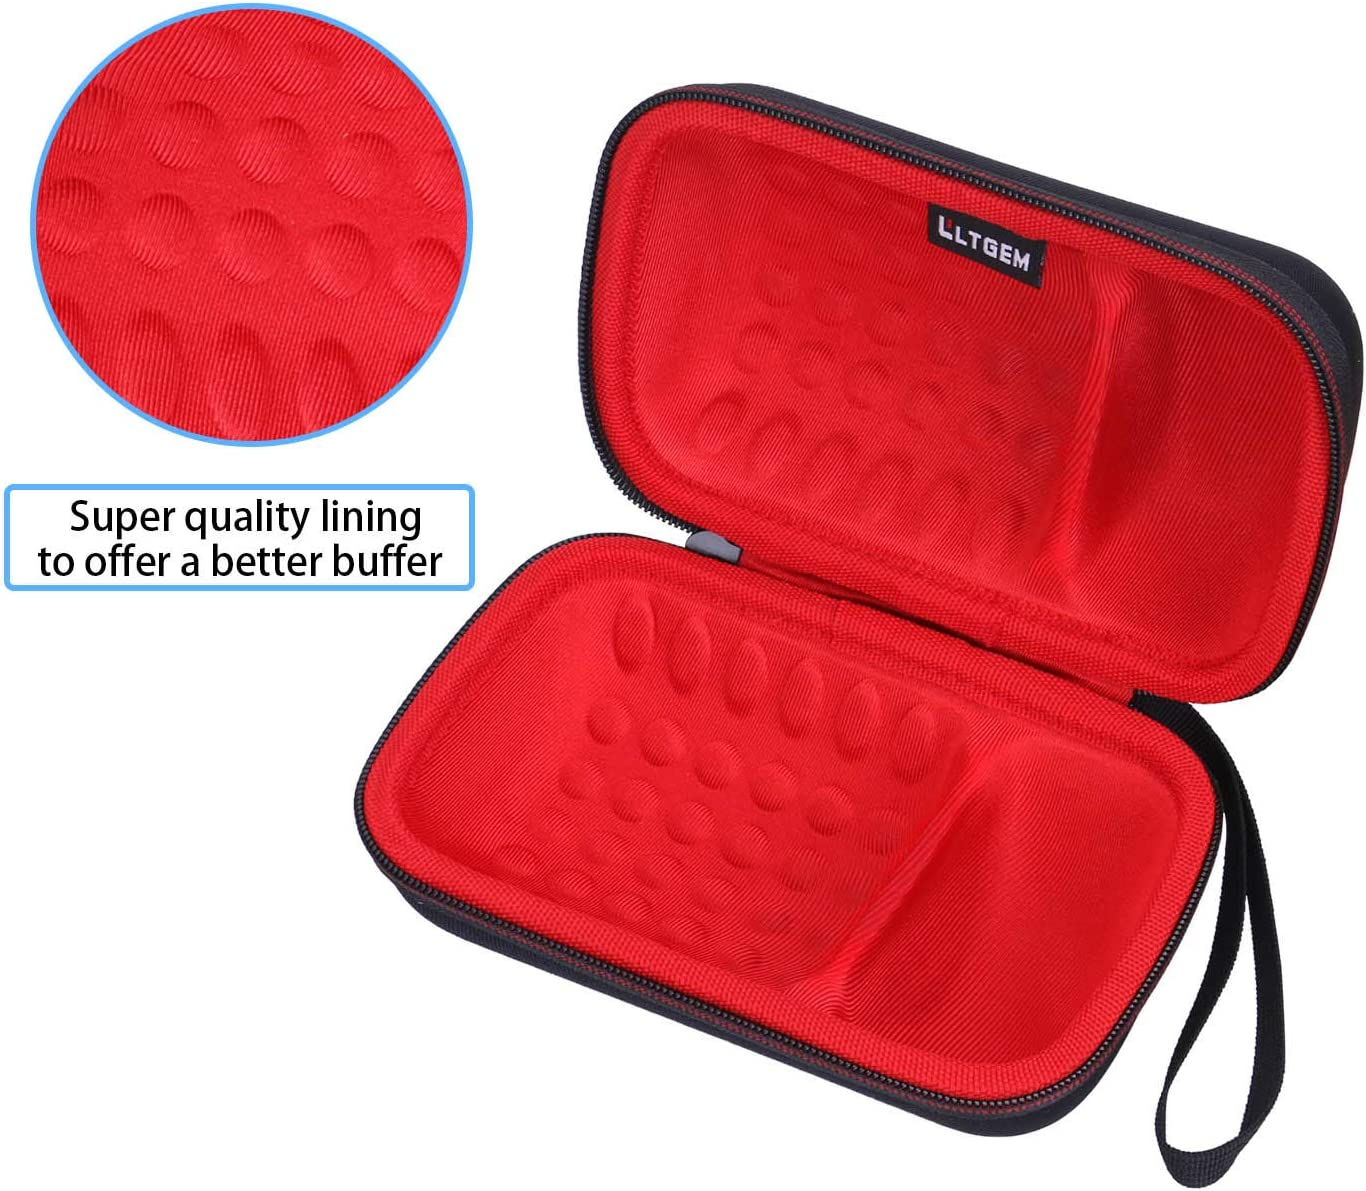 - LTGEM EVA Hard Case for Ultimate Ears WONDERBOOM 2 Red Fits USB Cable and Charger. Case for Ultimate Ears WONDERBOOM 2